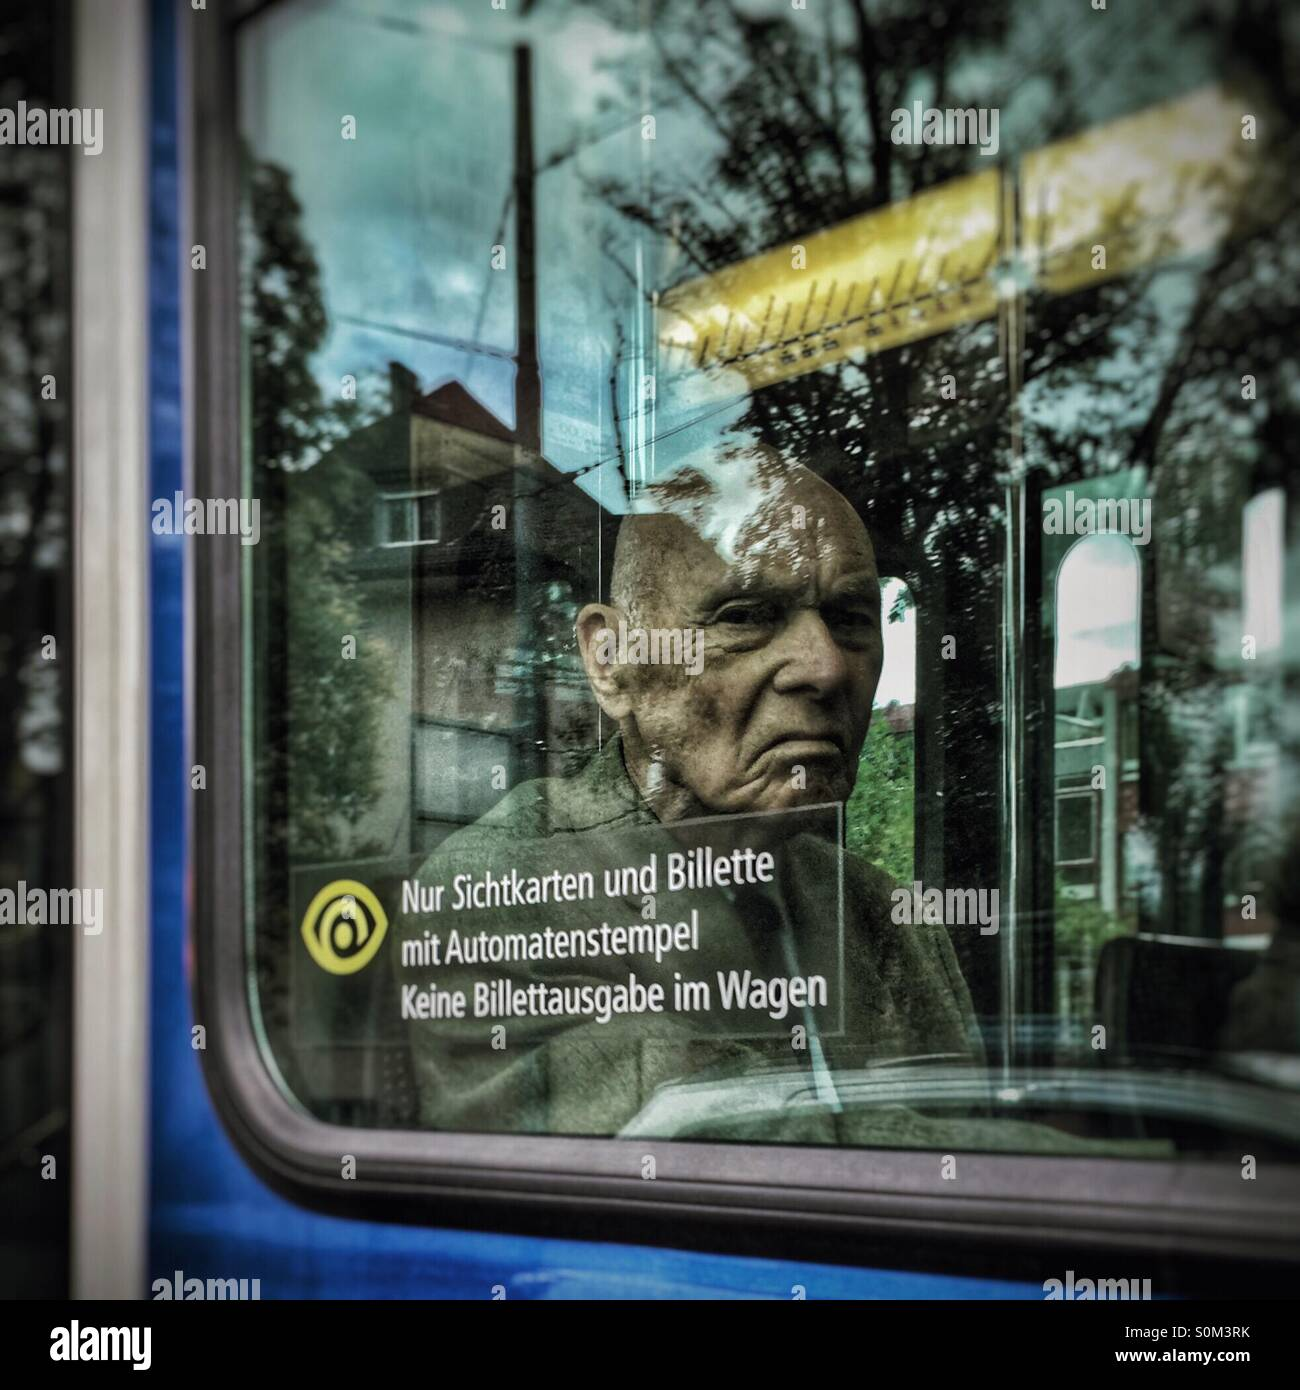 Sour-faced old man scowls through a tram window - Stock Image